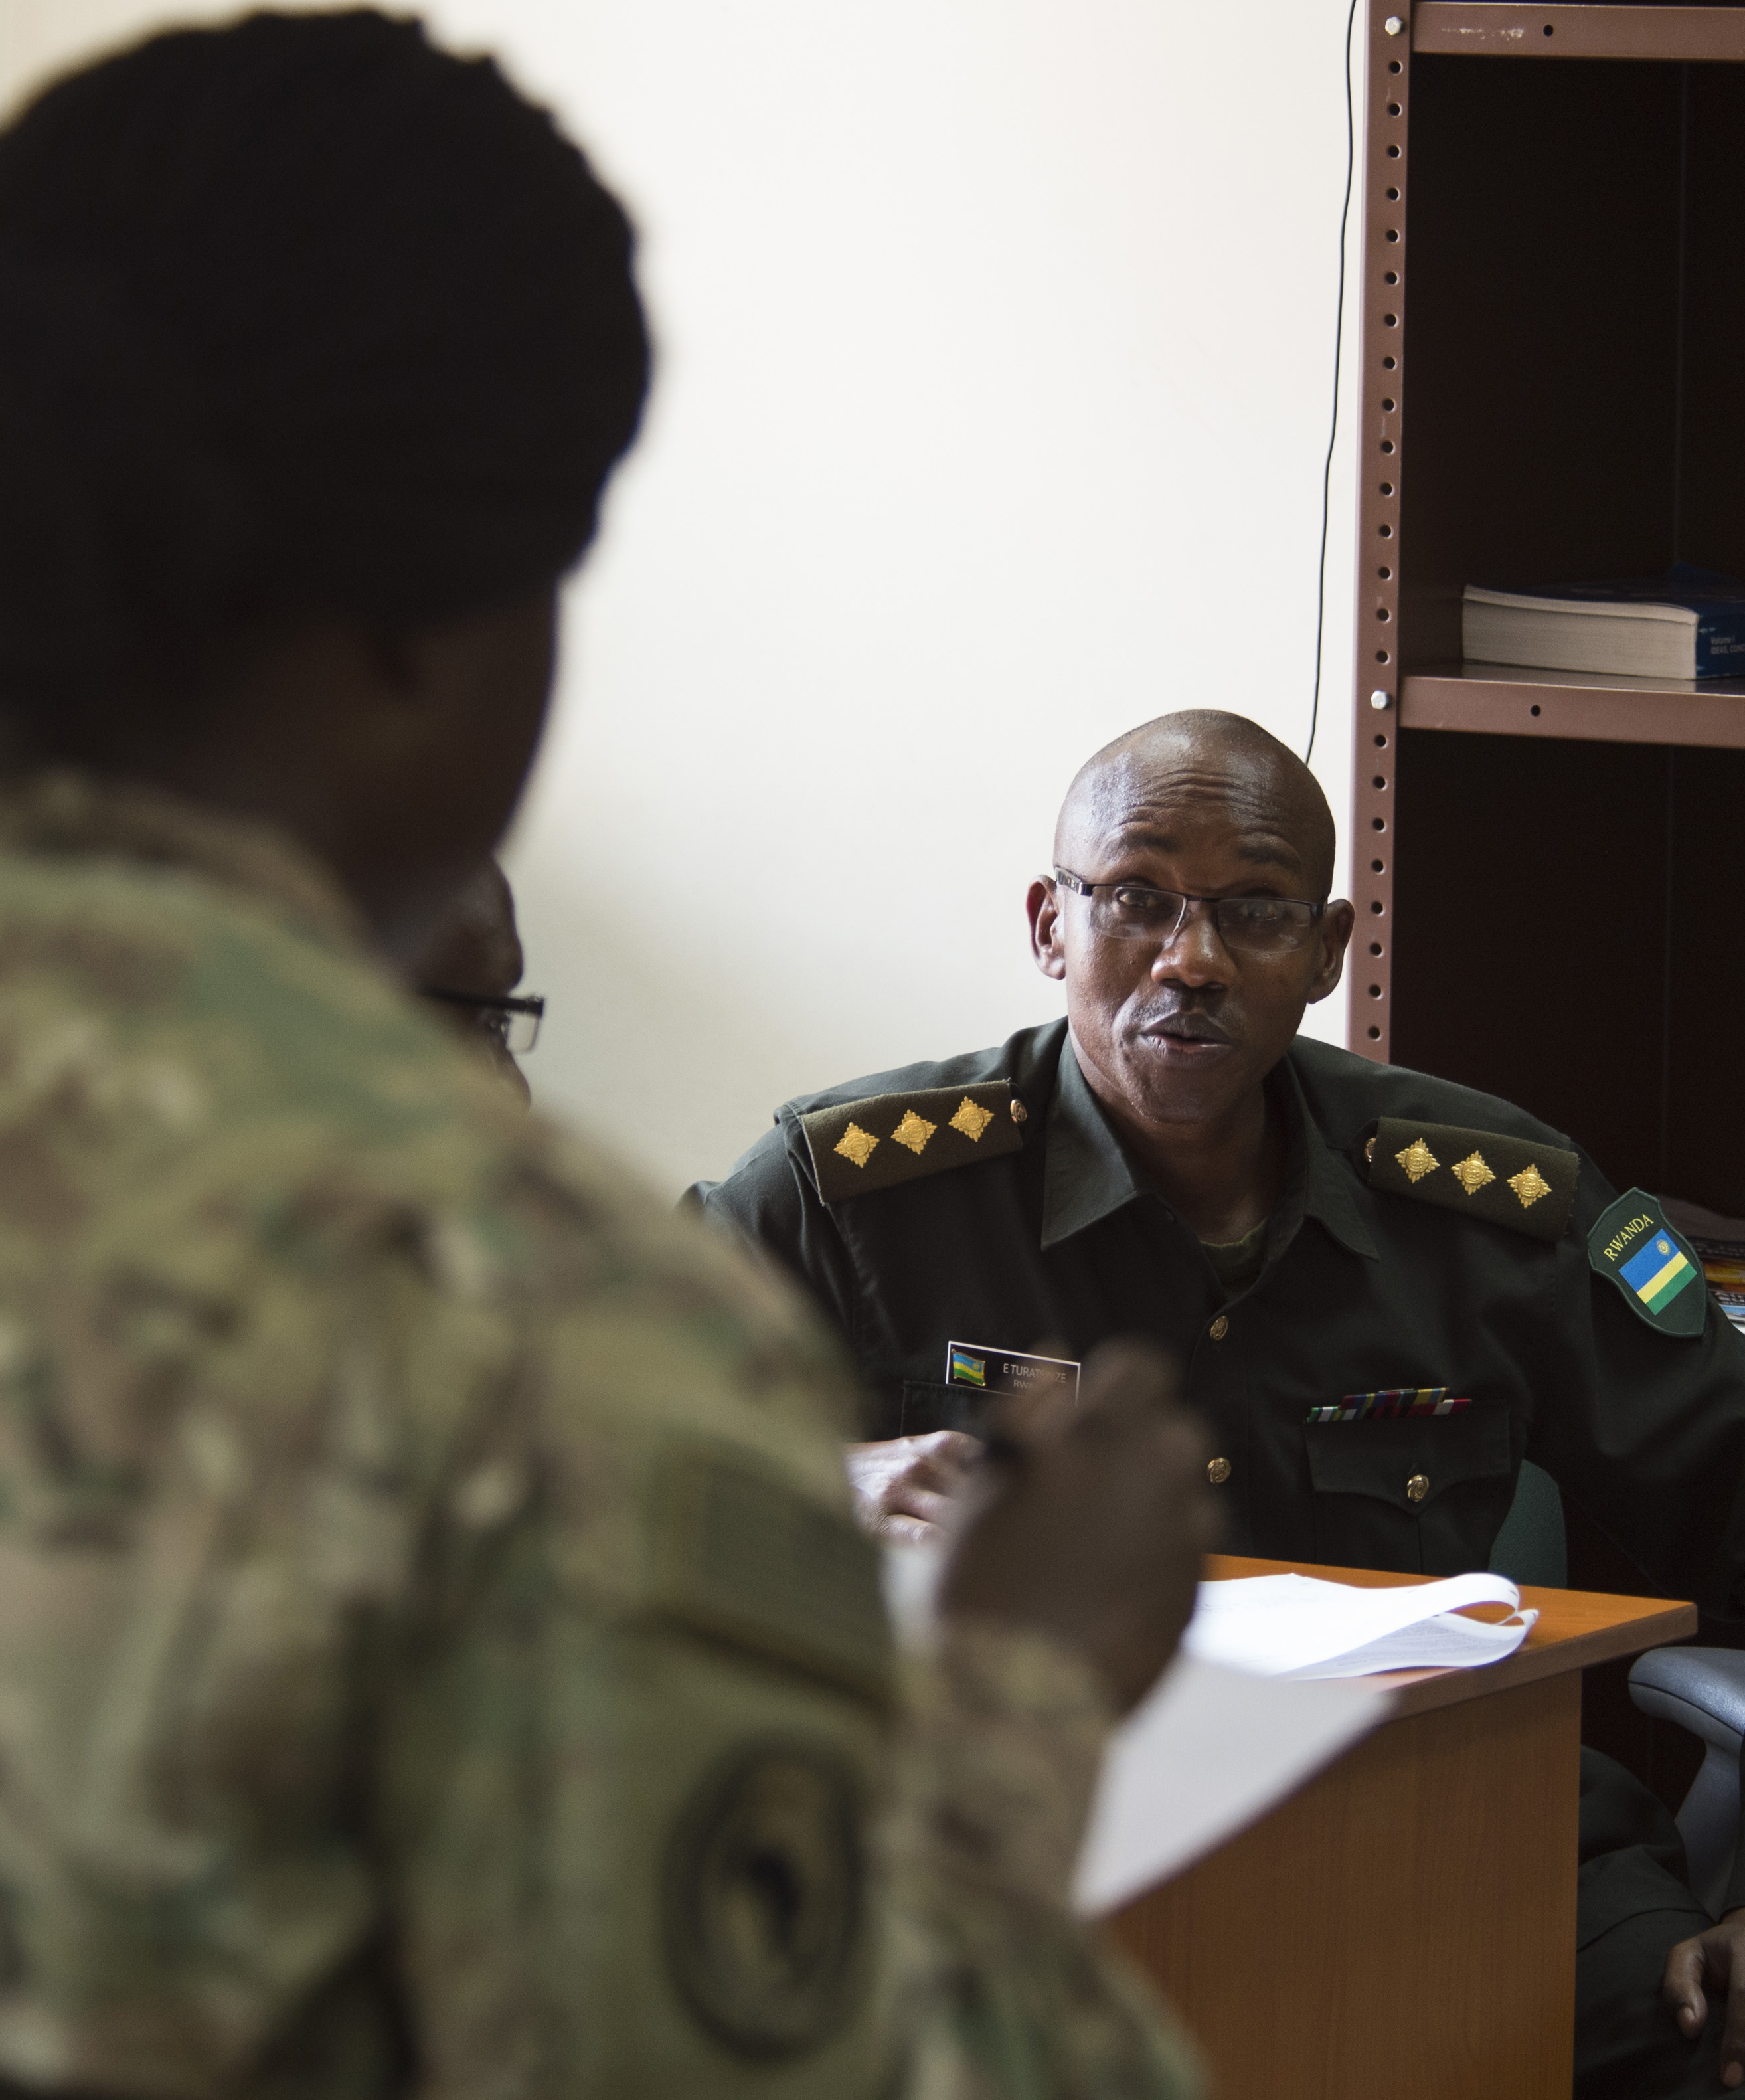 U.S. Army Capt. Morgan Shepard, Combined Joint Task Force-Horn of Africa Public Information officer, listens as Rwanda Defense Force Army Capt. Edouard Turatsinze, Ministry of Defense Public Relations and Communications officer, discusses a topic Feb. 2, 2016, at RDF headquarters, Kigali, Rwanda. CIMIC officers have many of the same roles and responsibilities as U.S. Army civil affairs personnel. Army civil affairs specialists are responsible for researching, coordinating, conducting and participating in the planning and production of civil affairs related documents, while enabling the civil-military operations of the supported commander. (U.S. Air Force photo by Senior Airman Peter Thompson)